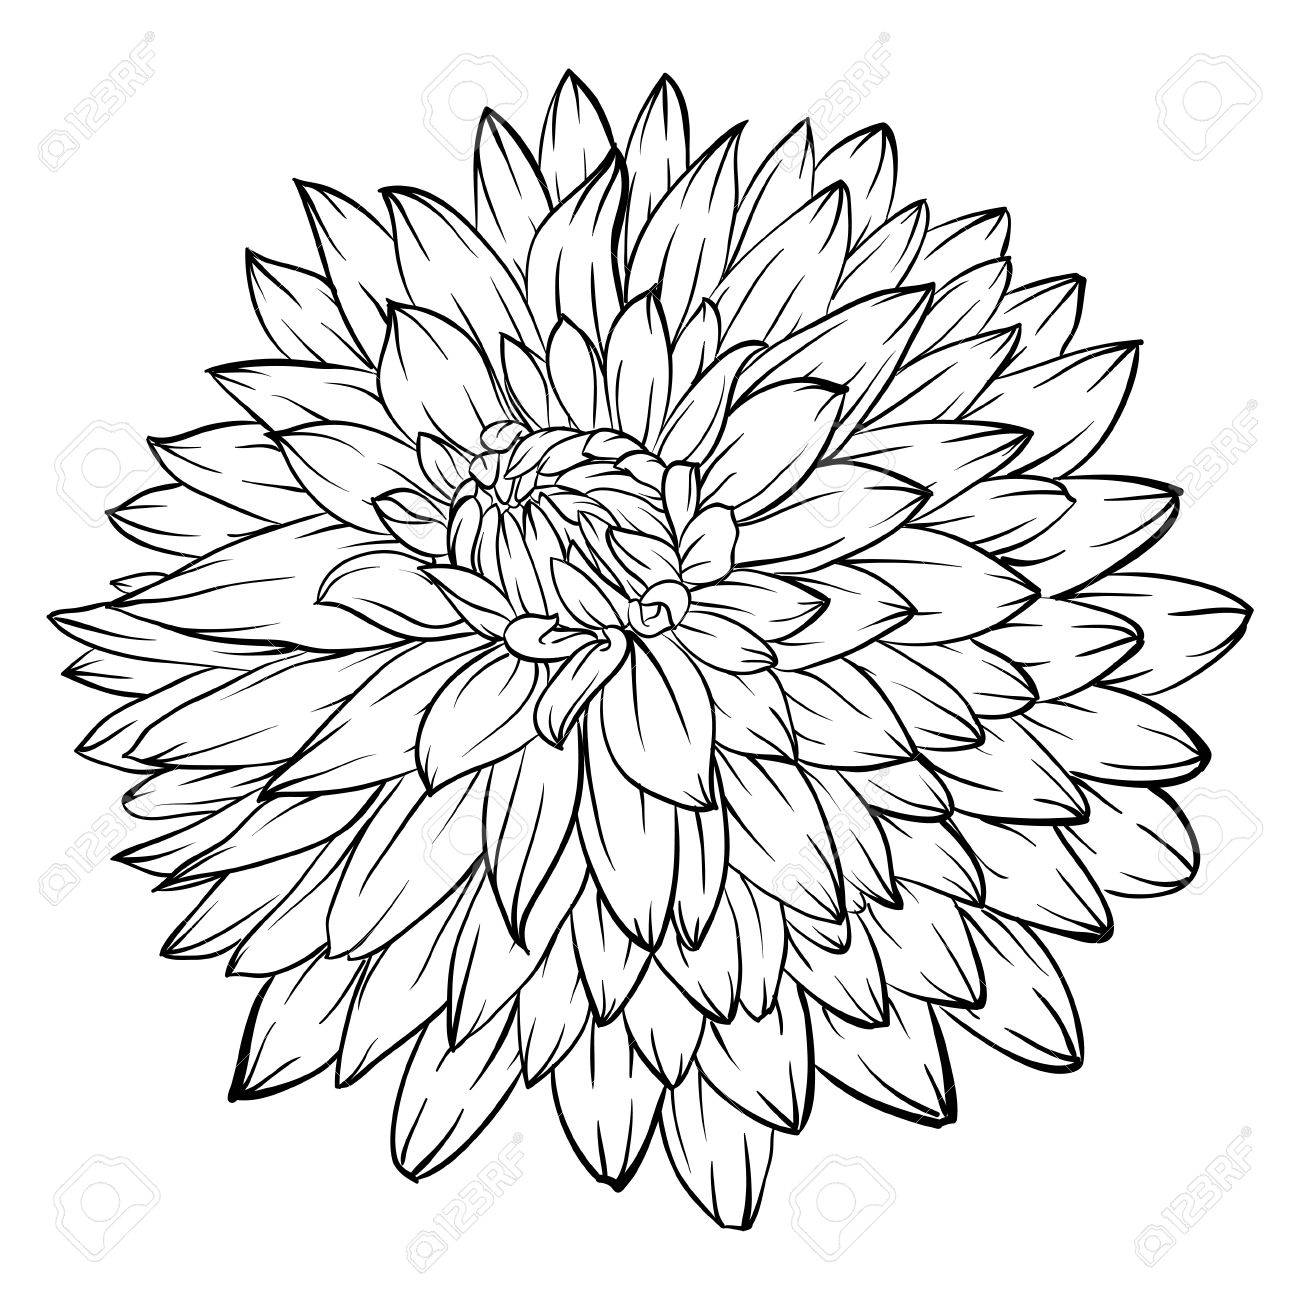 Dahlia Drawing At Getdrawings Free For Personal Use Dahlia